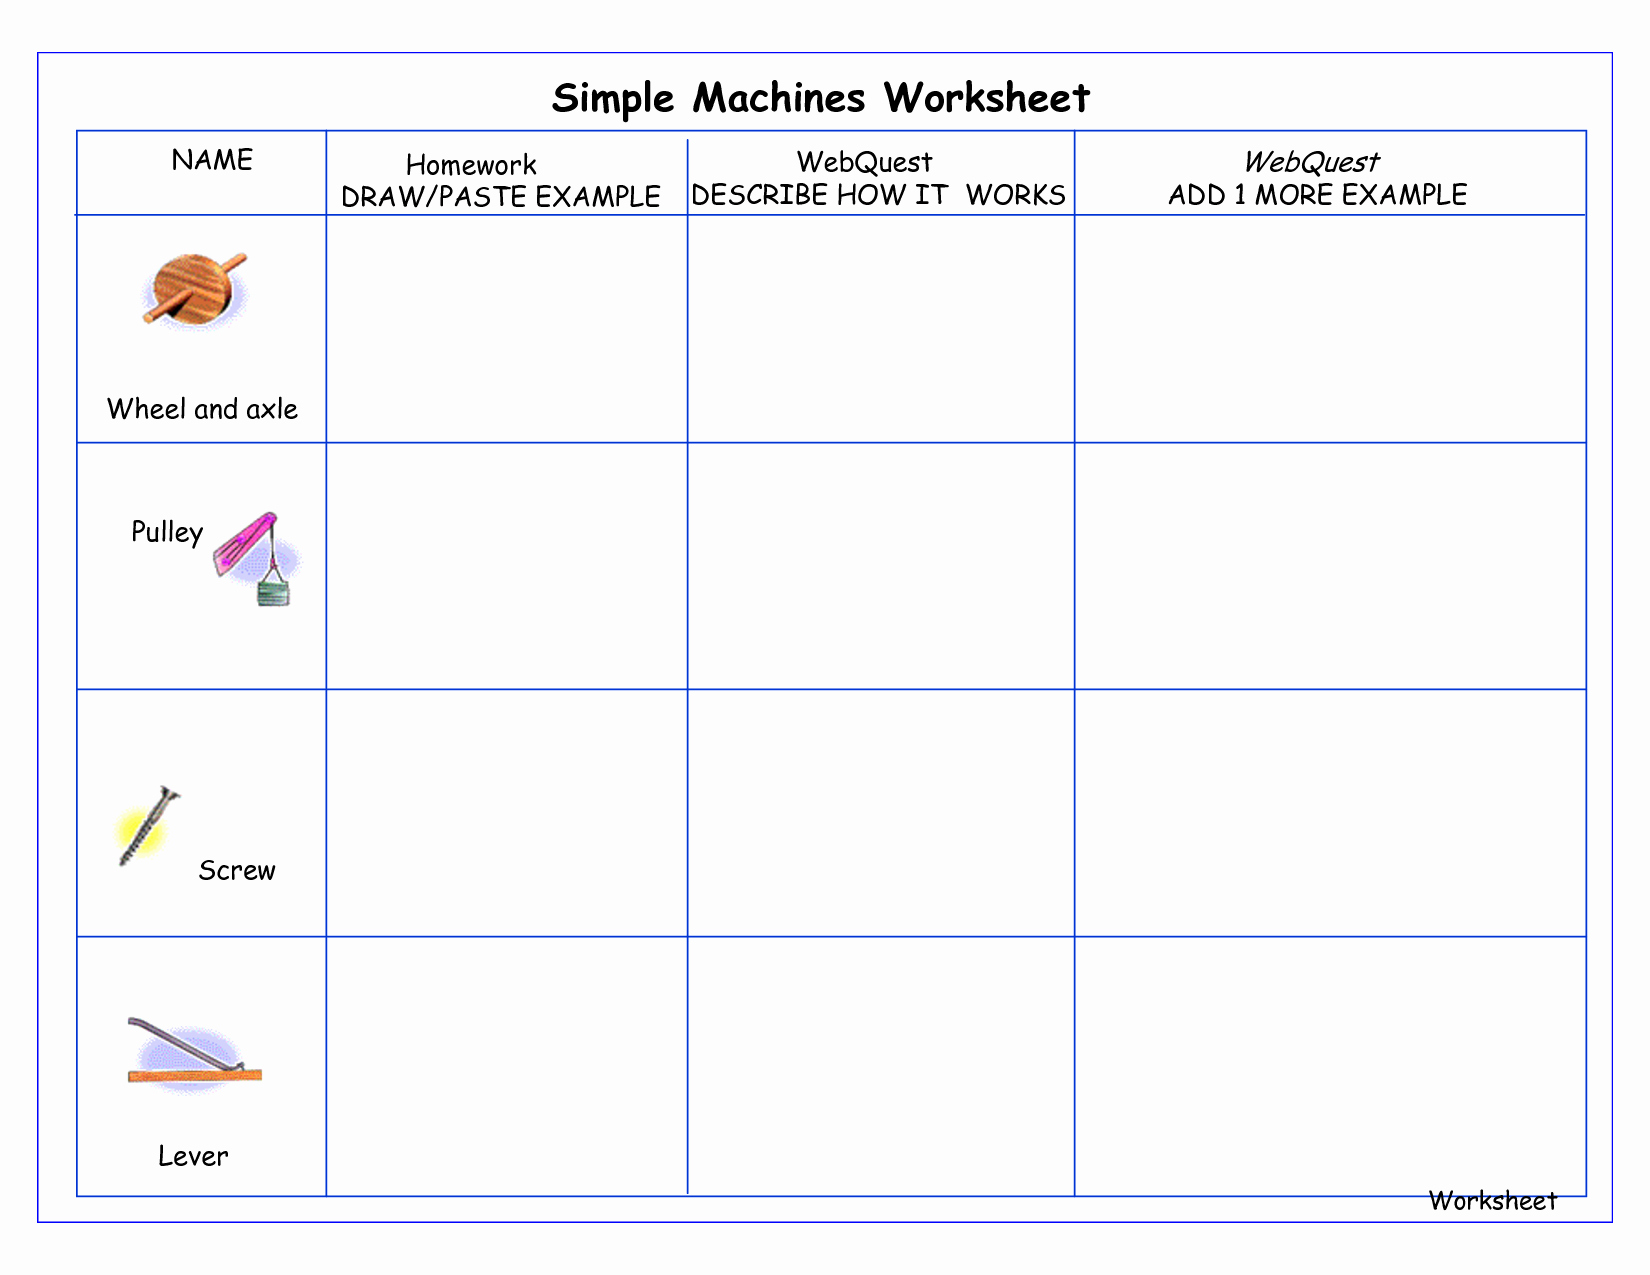 Simple Interest Worksheet Pdf Luxury Simple Machines for Kids